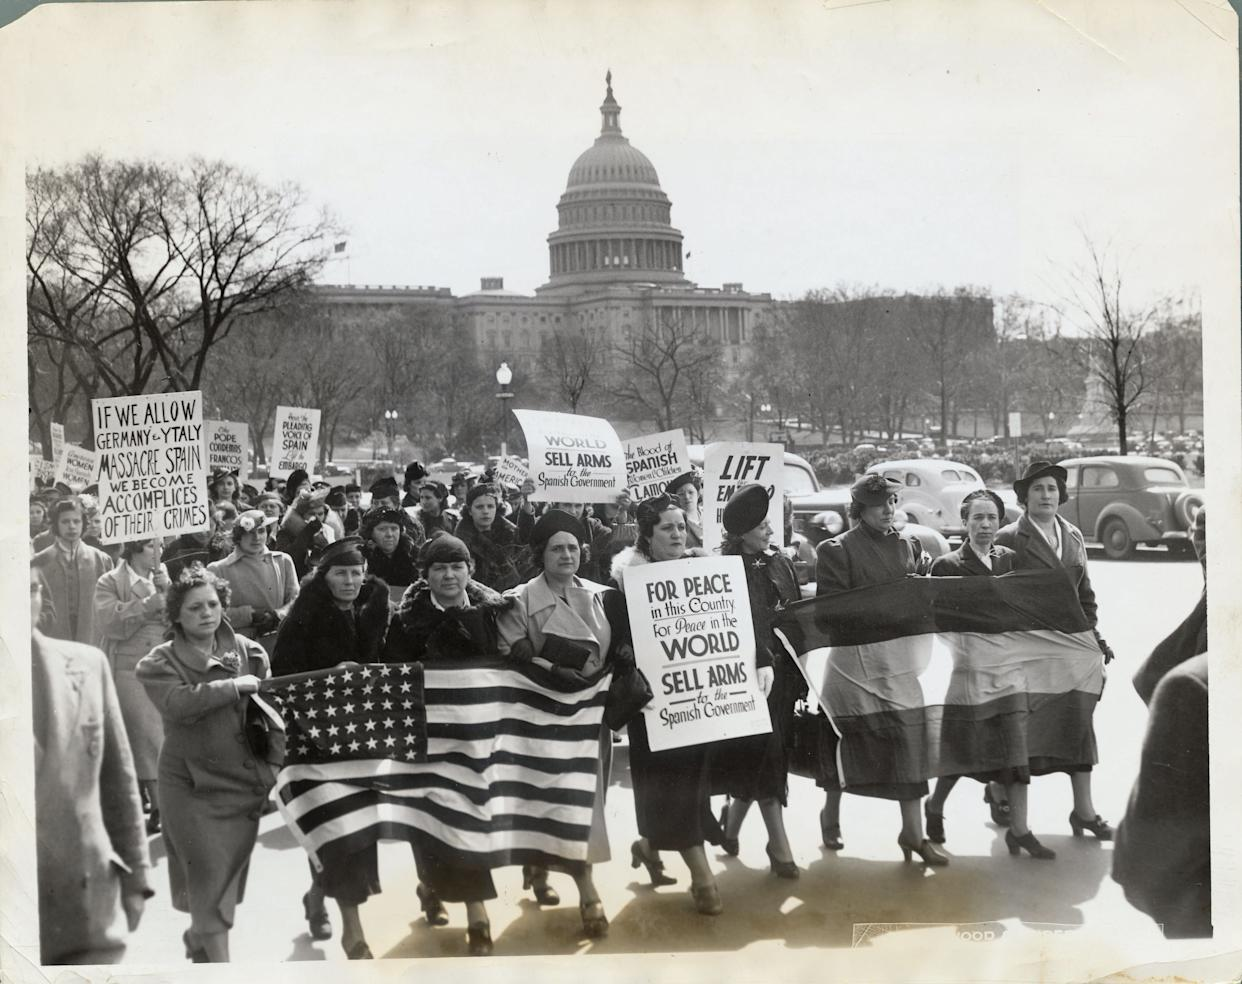 Over three thousand Spanish American women, representing 20,000 members of the united Committees of Spanish Women in America arrived by special train in Washington today to publicize the plight of Spain's women and children and urge our government to revoke the embargo government of Spain circa 1938. Photo shows the sympathizers marching to the State Department and the white House with hopes of seeing the president and the Secretary of State. In the background can be seen the Capitol.